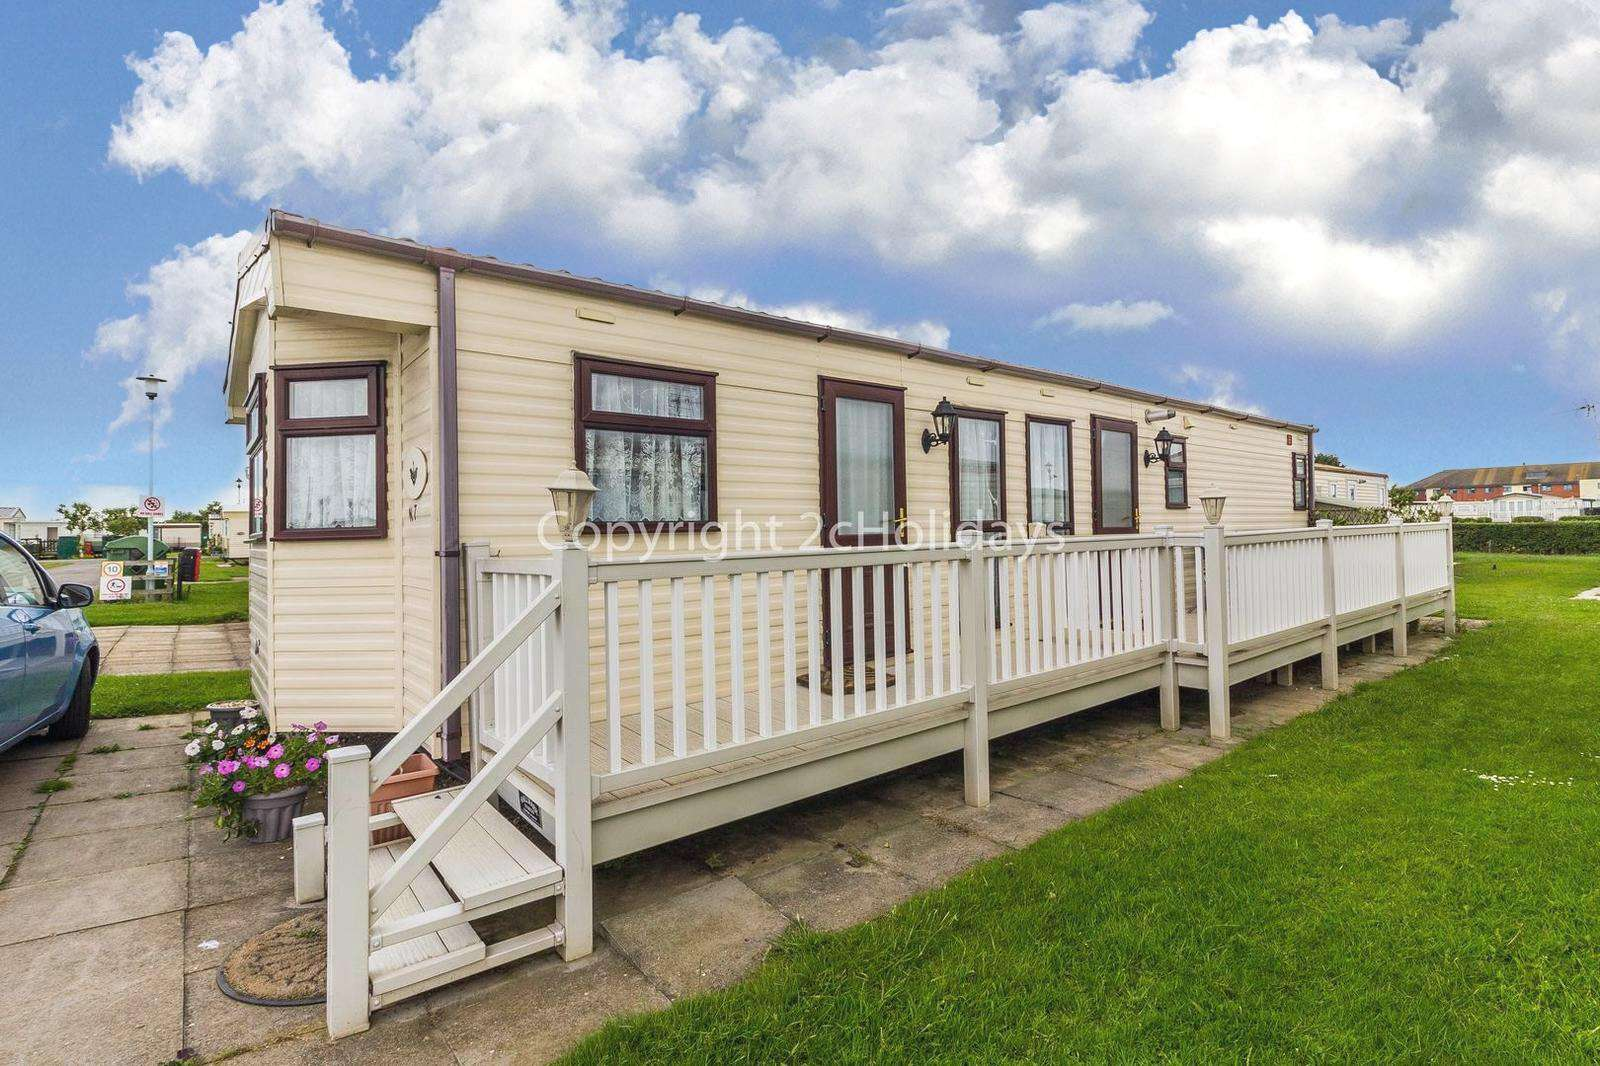 Great caravan with a homely feel!